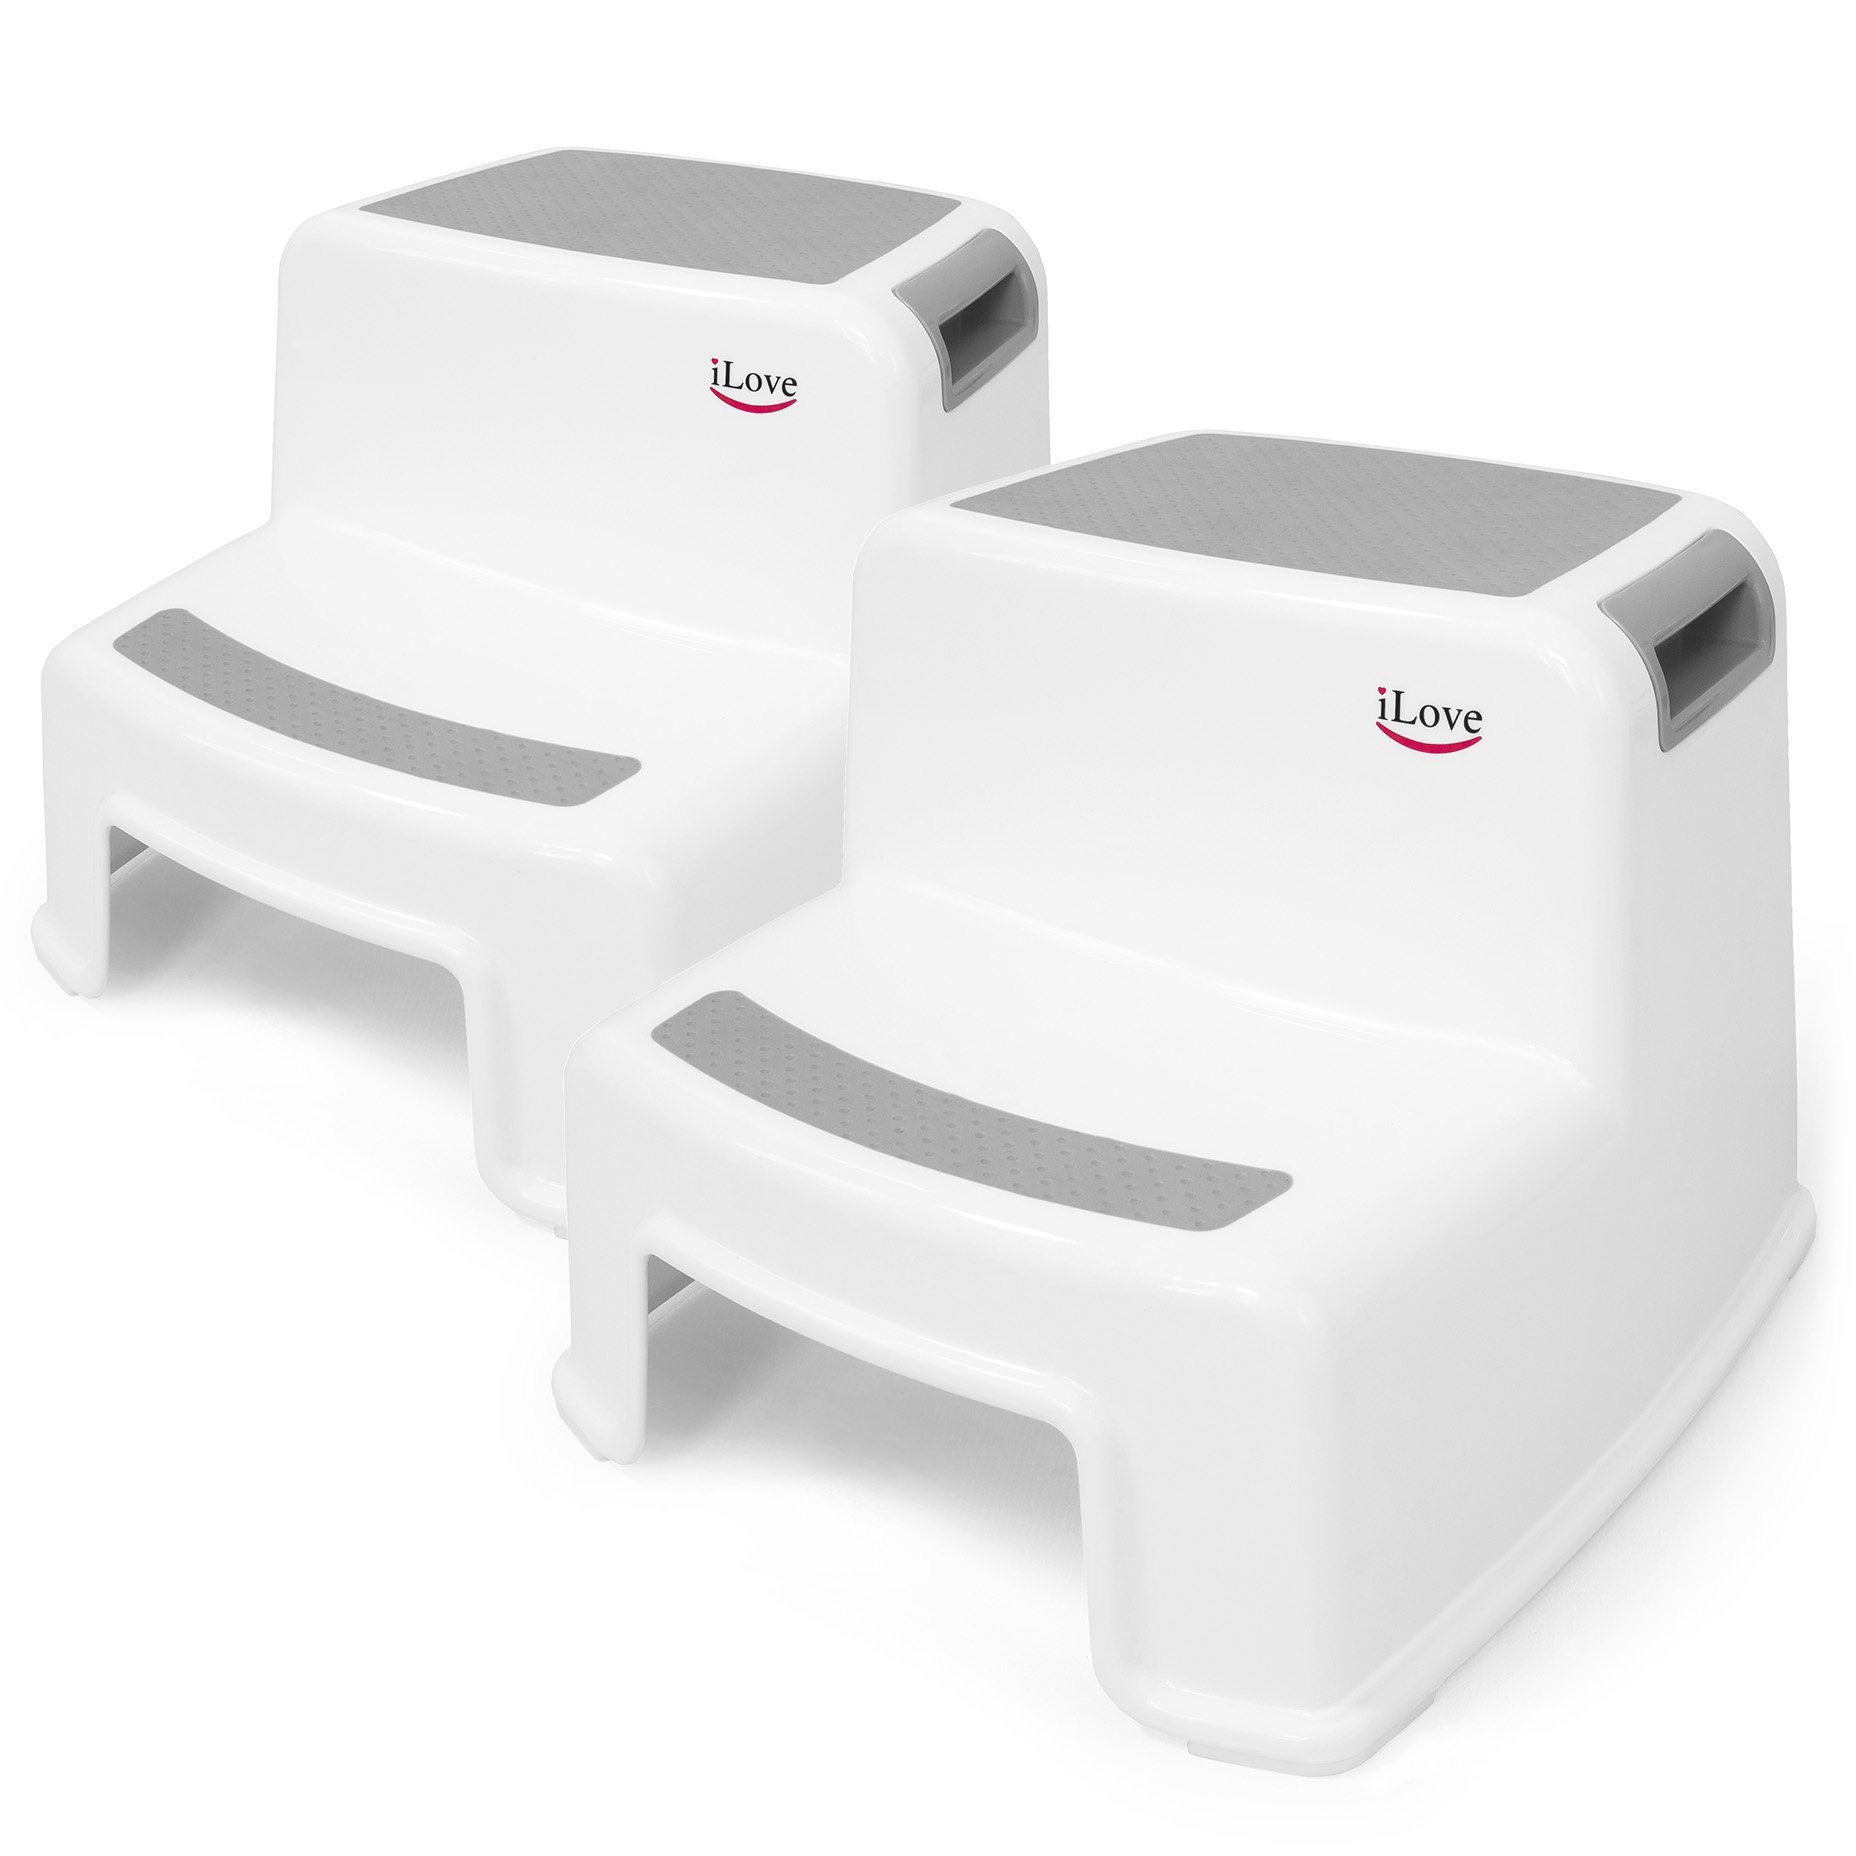 2 Step Stool for Kids (Gray 2 Pack) | Toddler Stool for Toilet Potty Training | Slip Resistant Soft Grip for Safety as Bathroom Potty Stool & Kitchen Step Stool | Dual Height & Wide Two Step by iLove